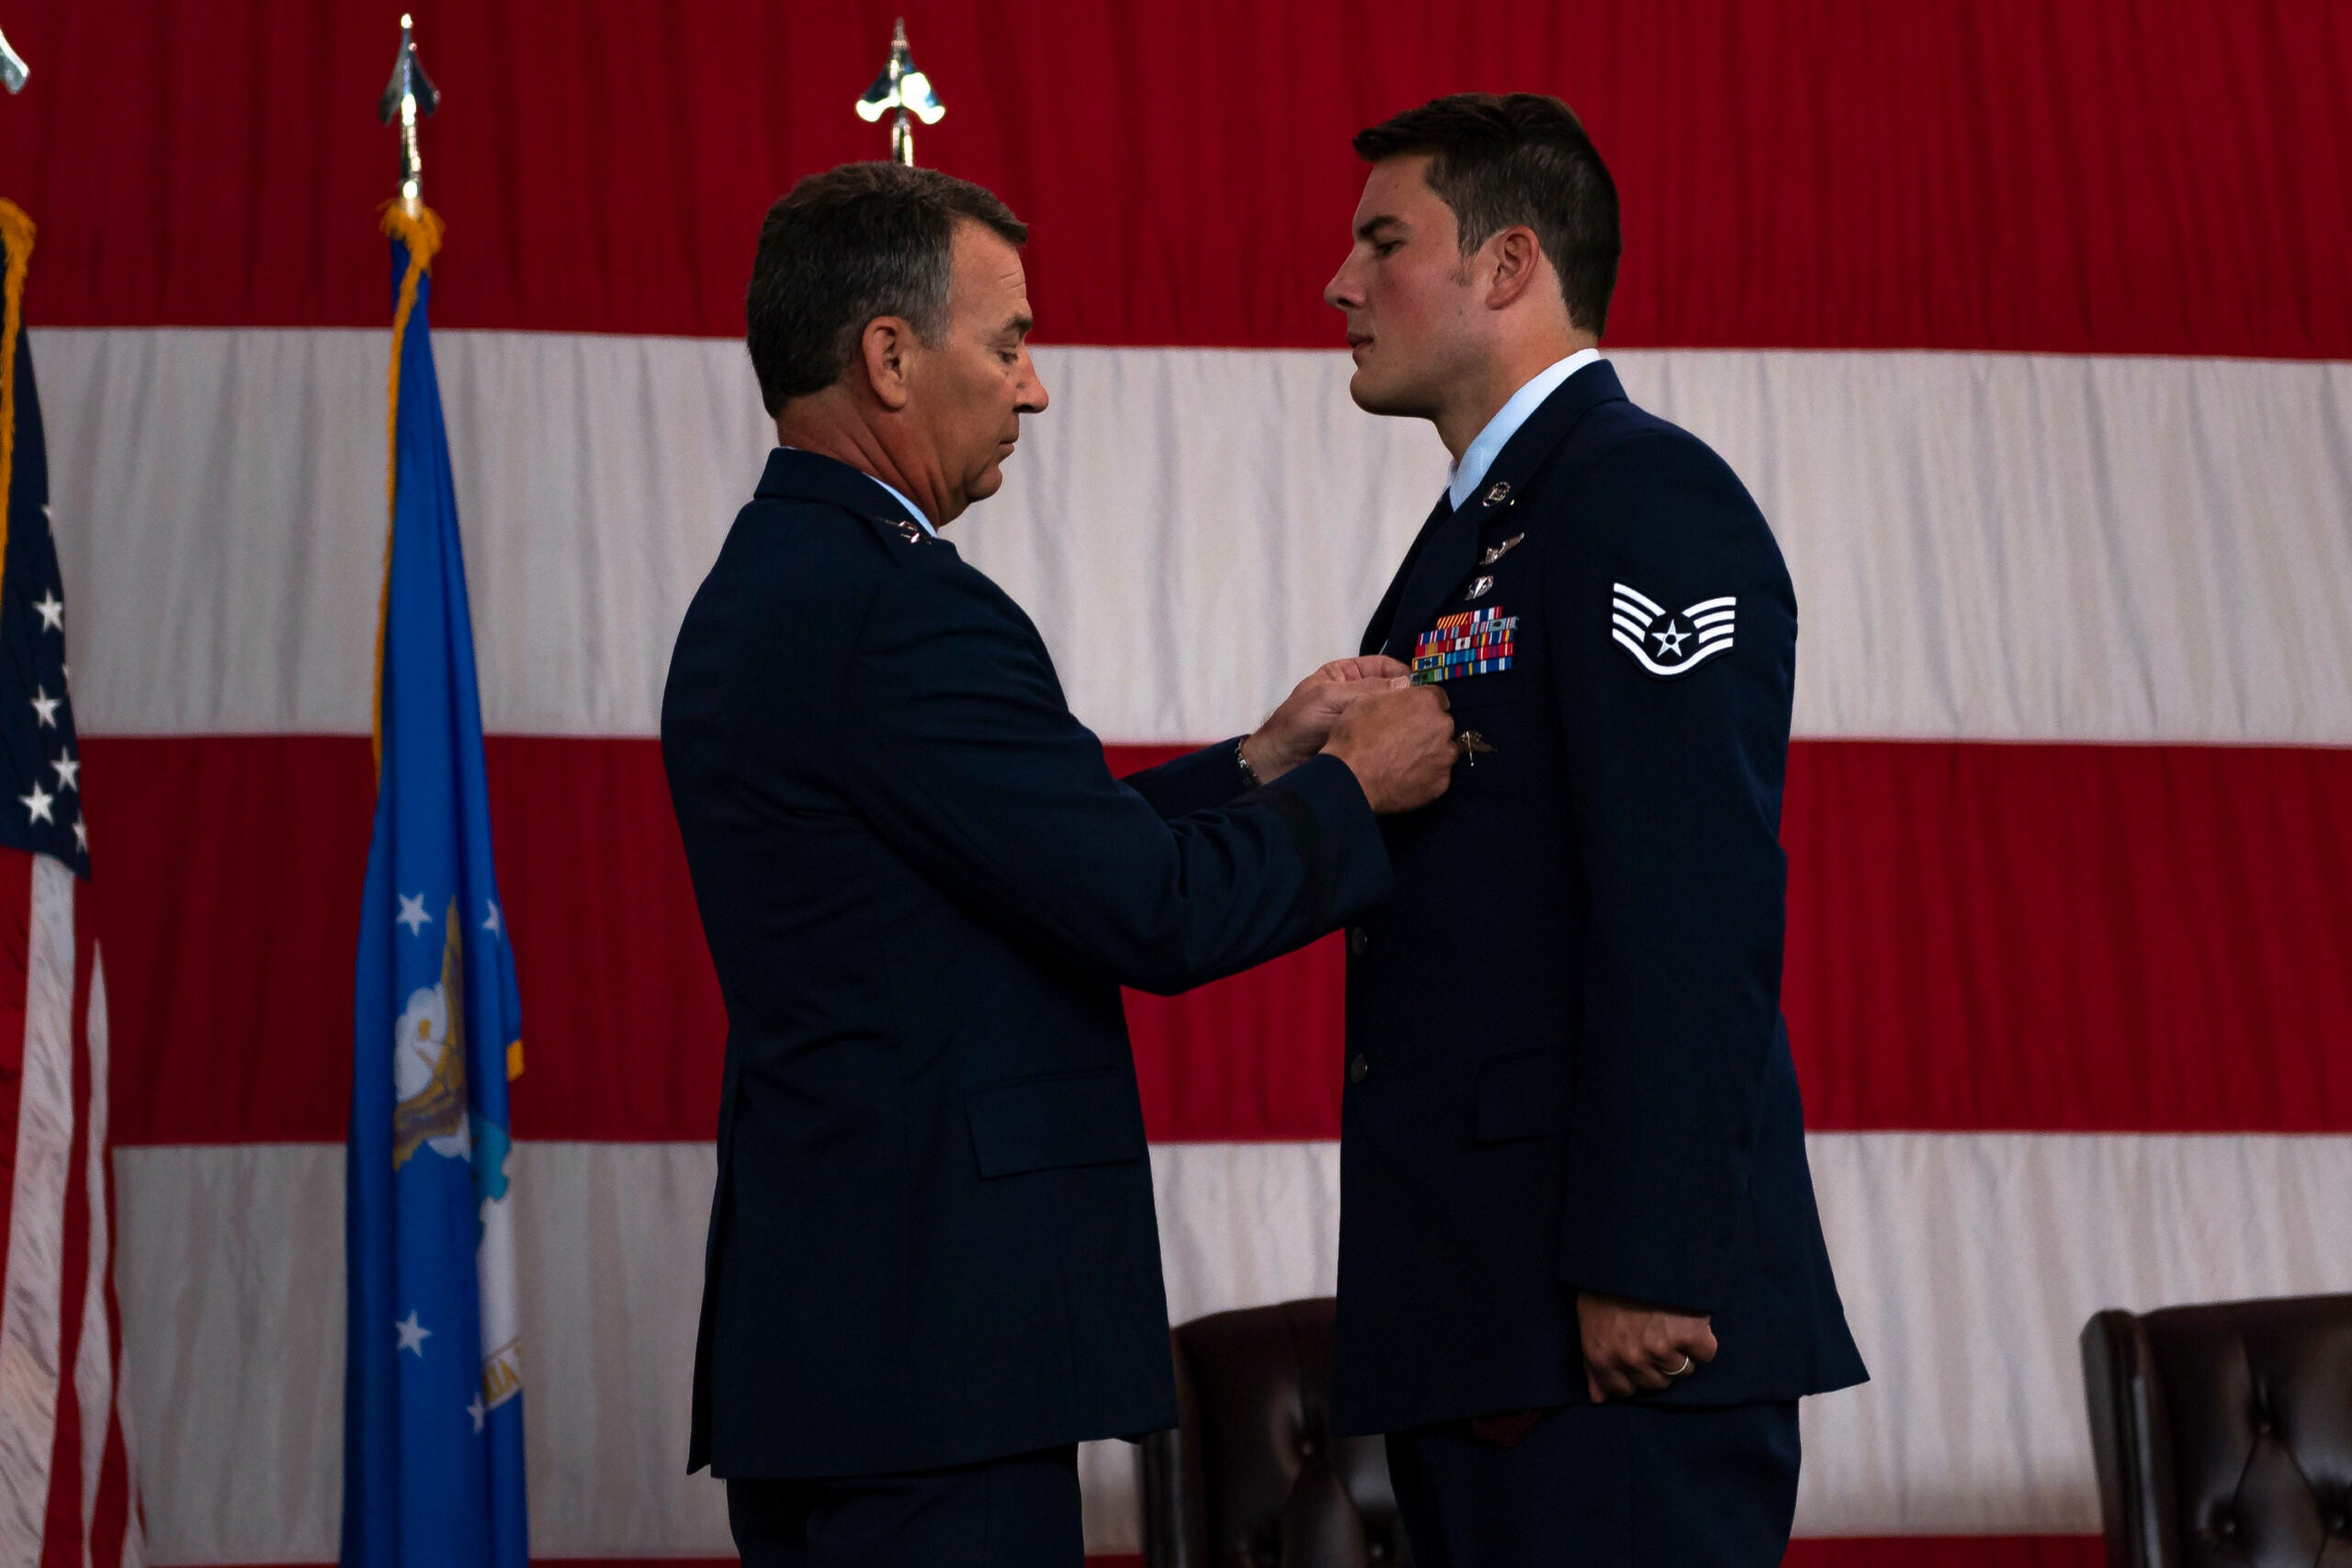 Air Force pararescueman awarded Silver Star for risking his life to save his teammates during Afghanistan firefight